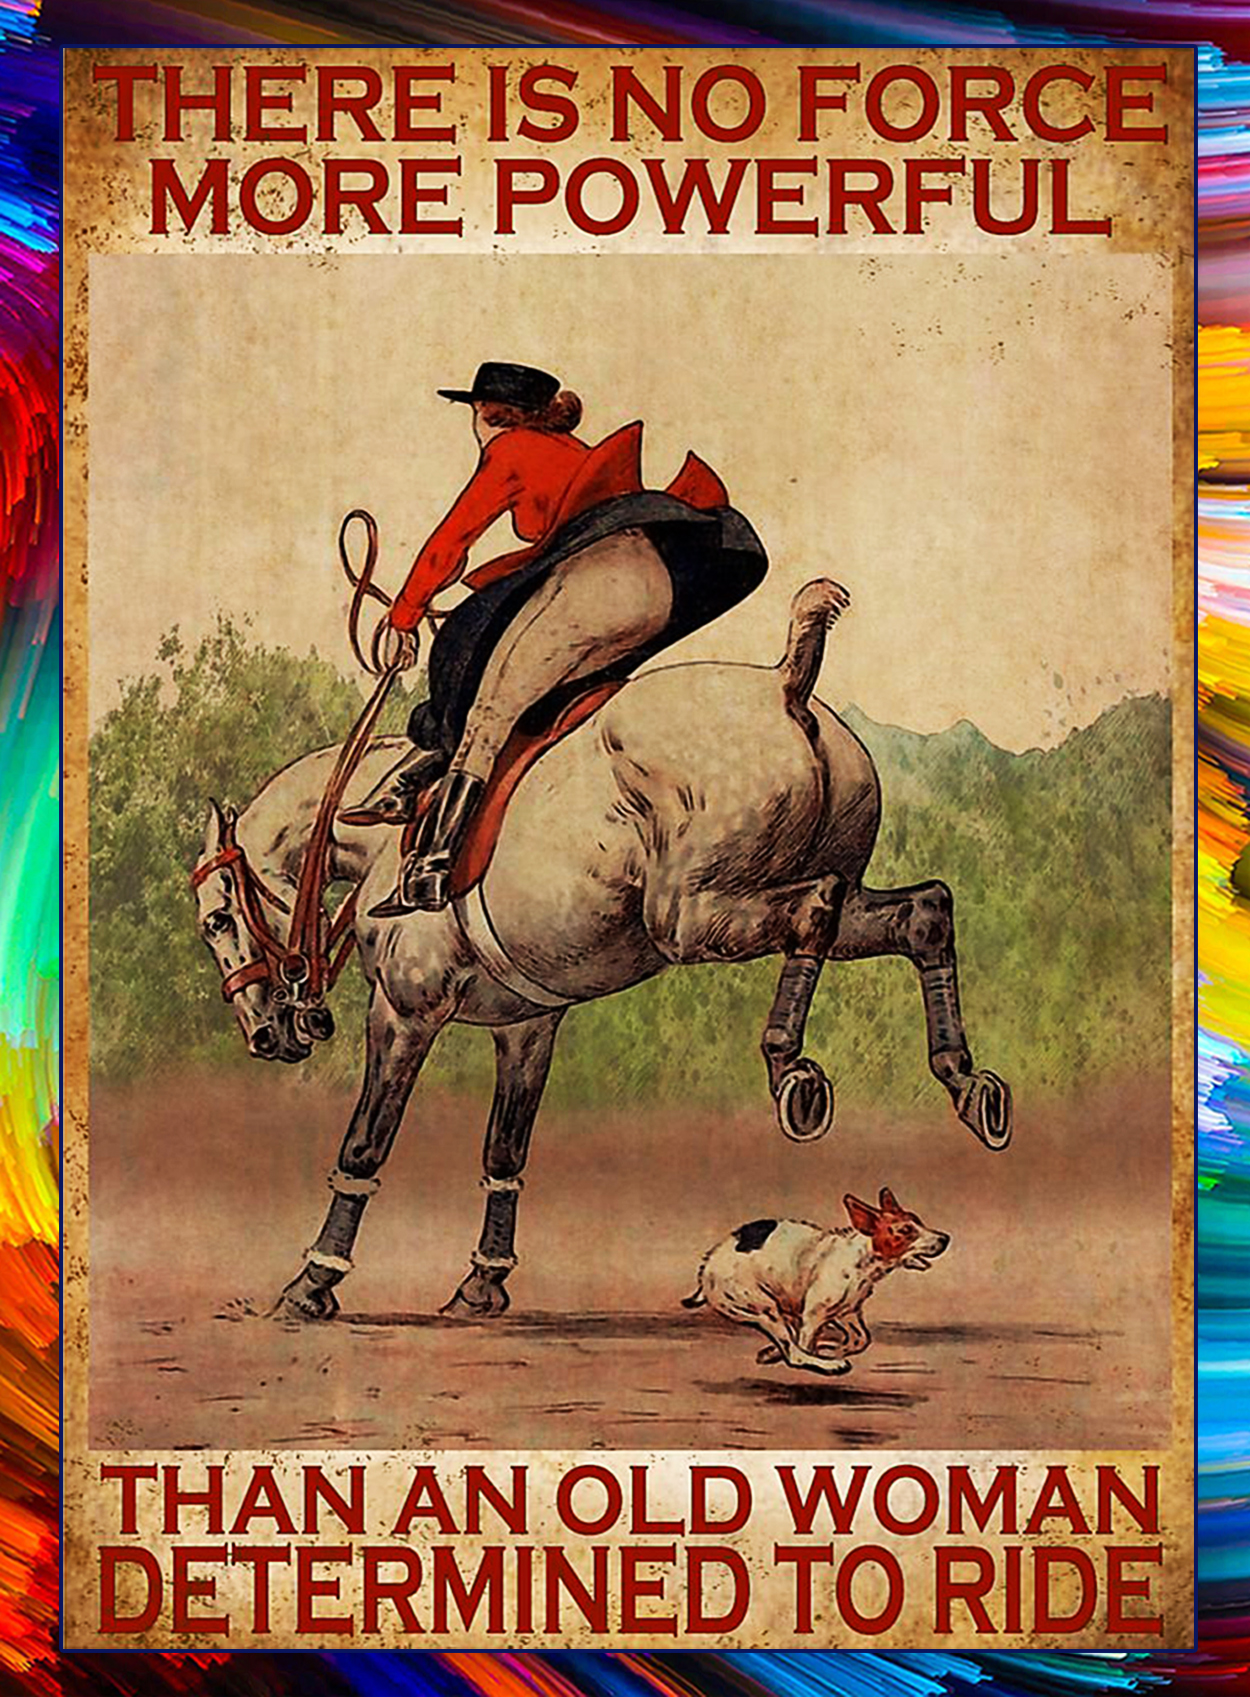 Horse There is no force more powerful than an old woman determined to ride poster - A2